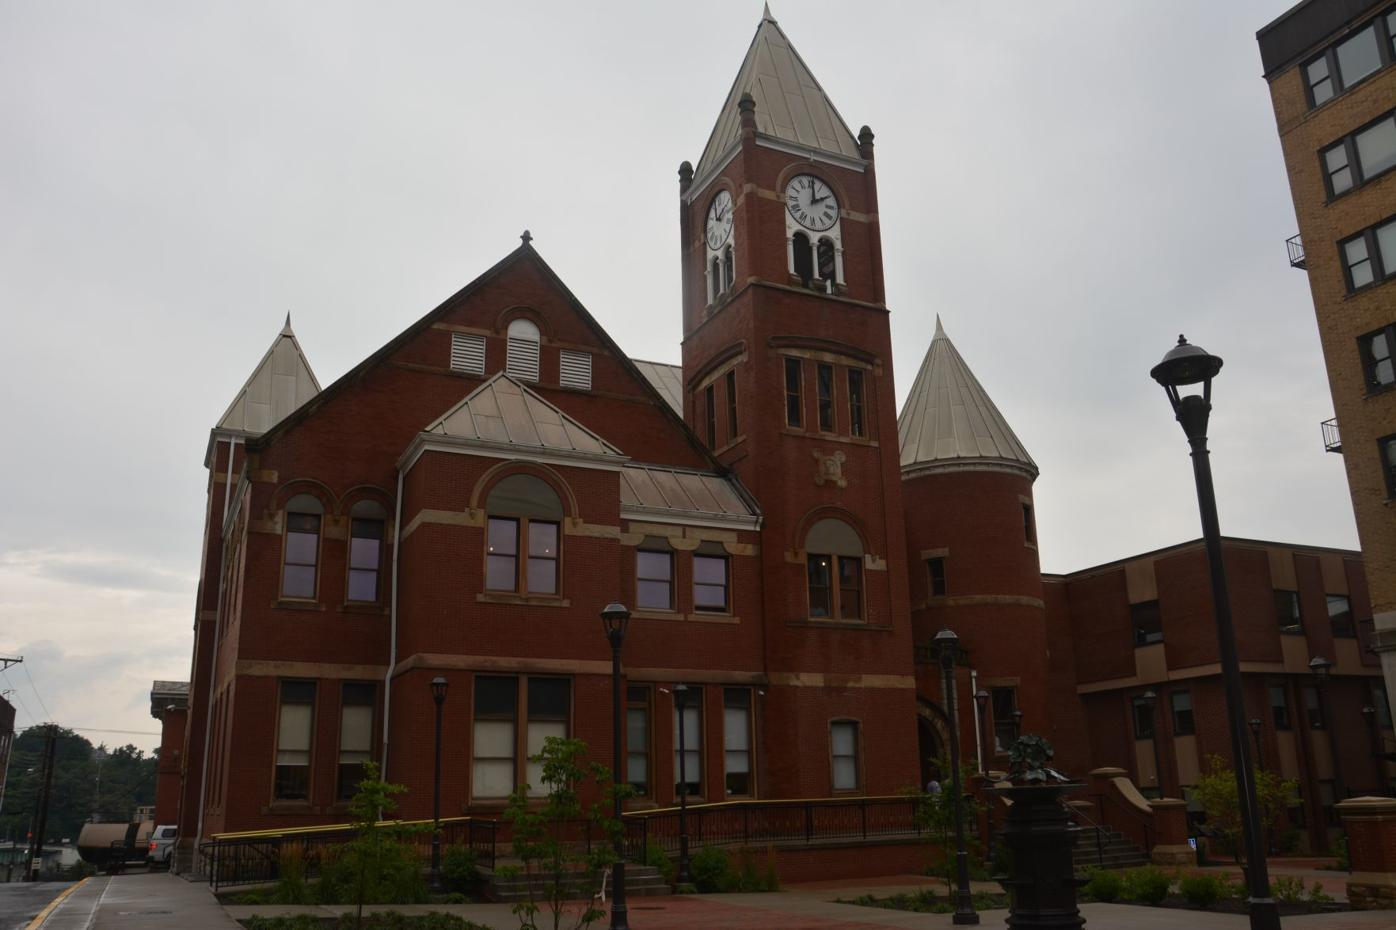 Mon County courthouse square